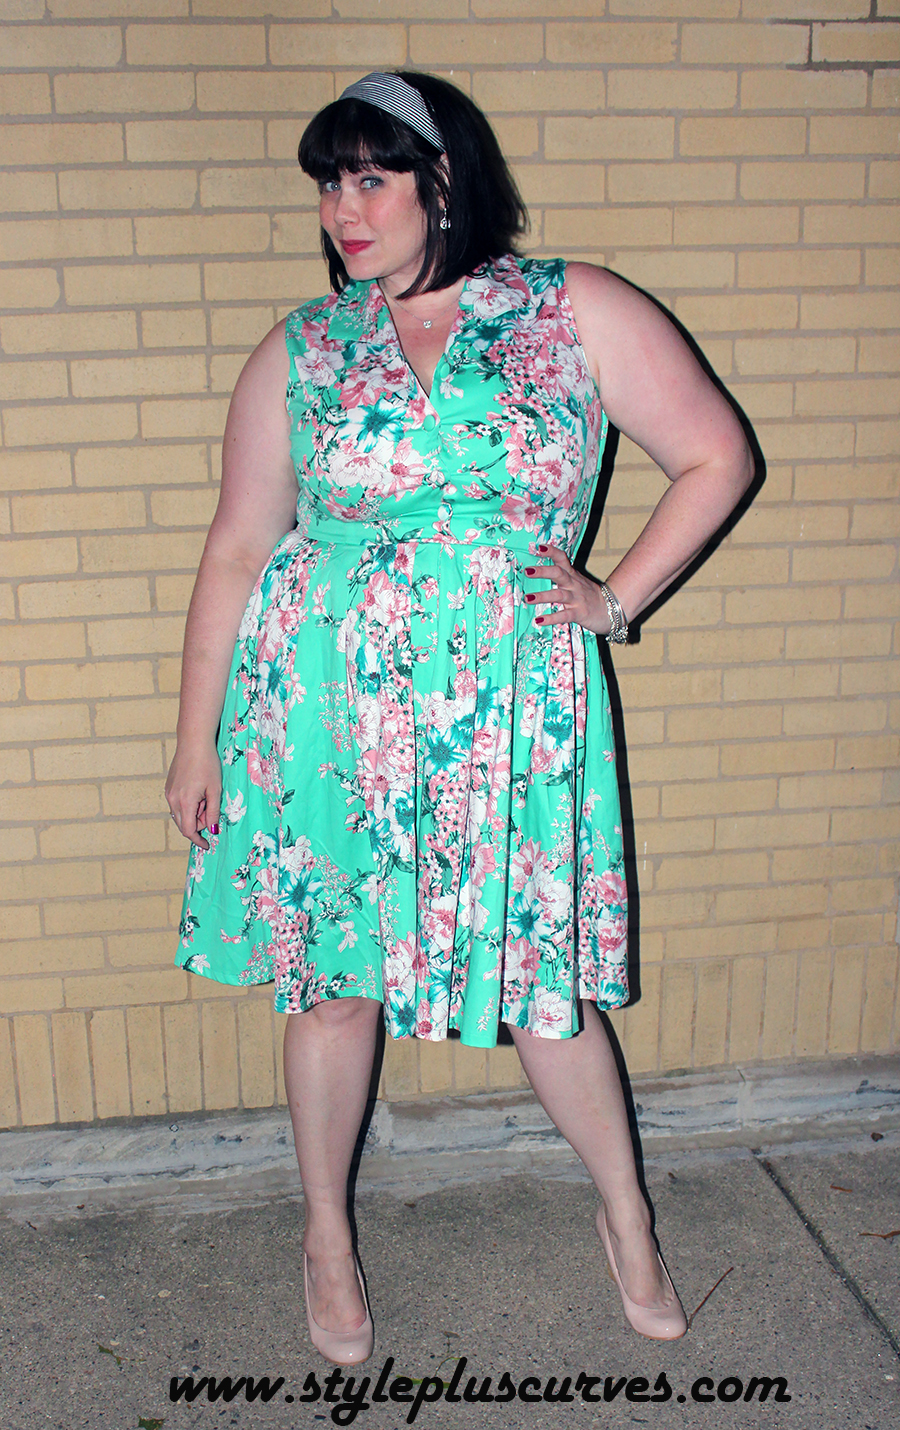 Voodoo Vixen Vintage Dress in Minty Green Floral on Amber from Style Plus Curves